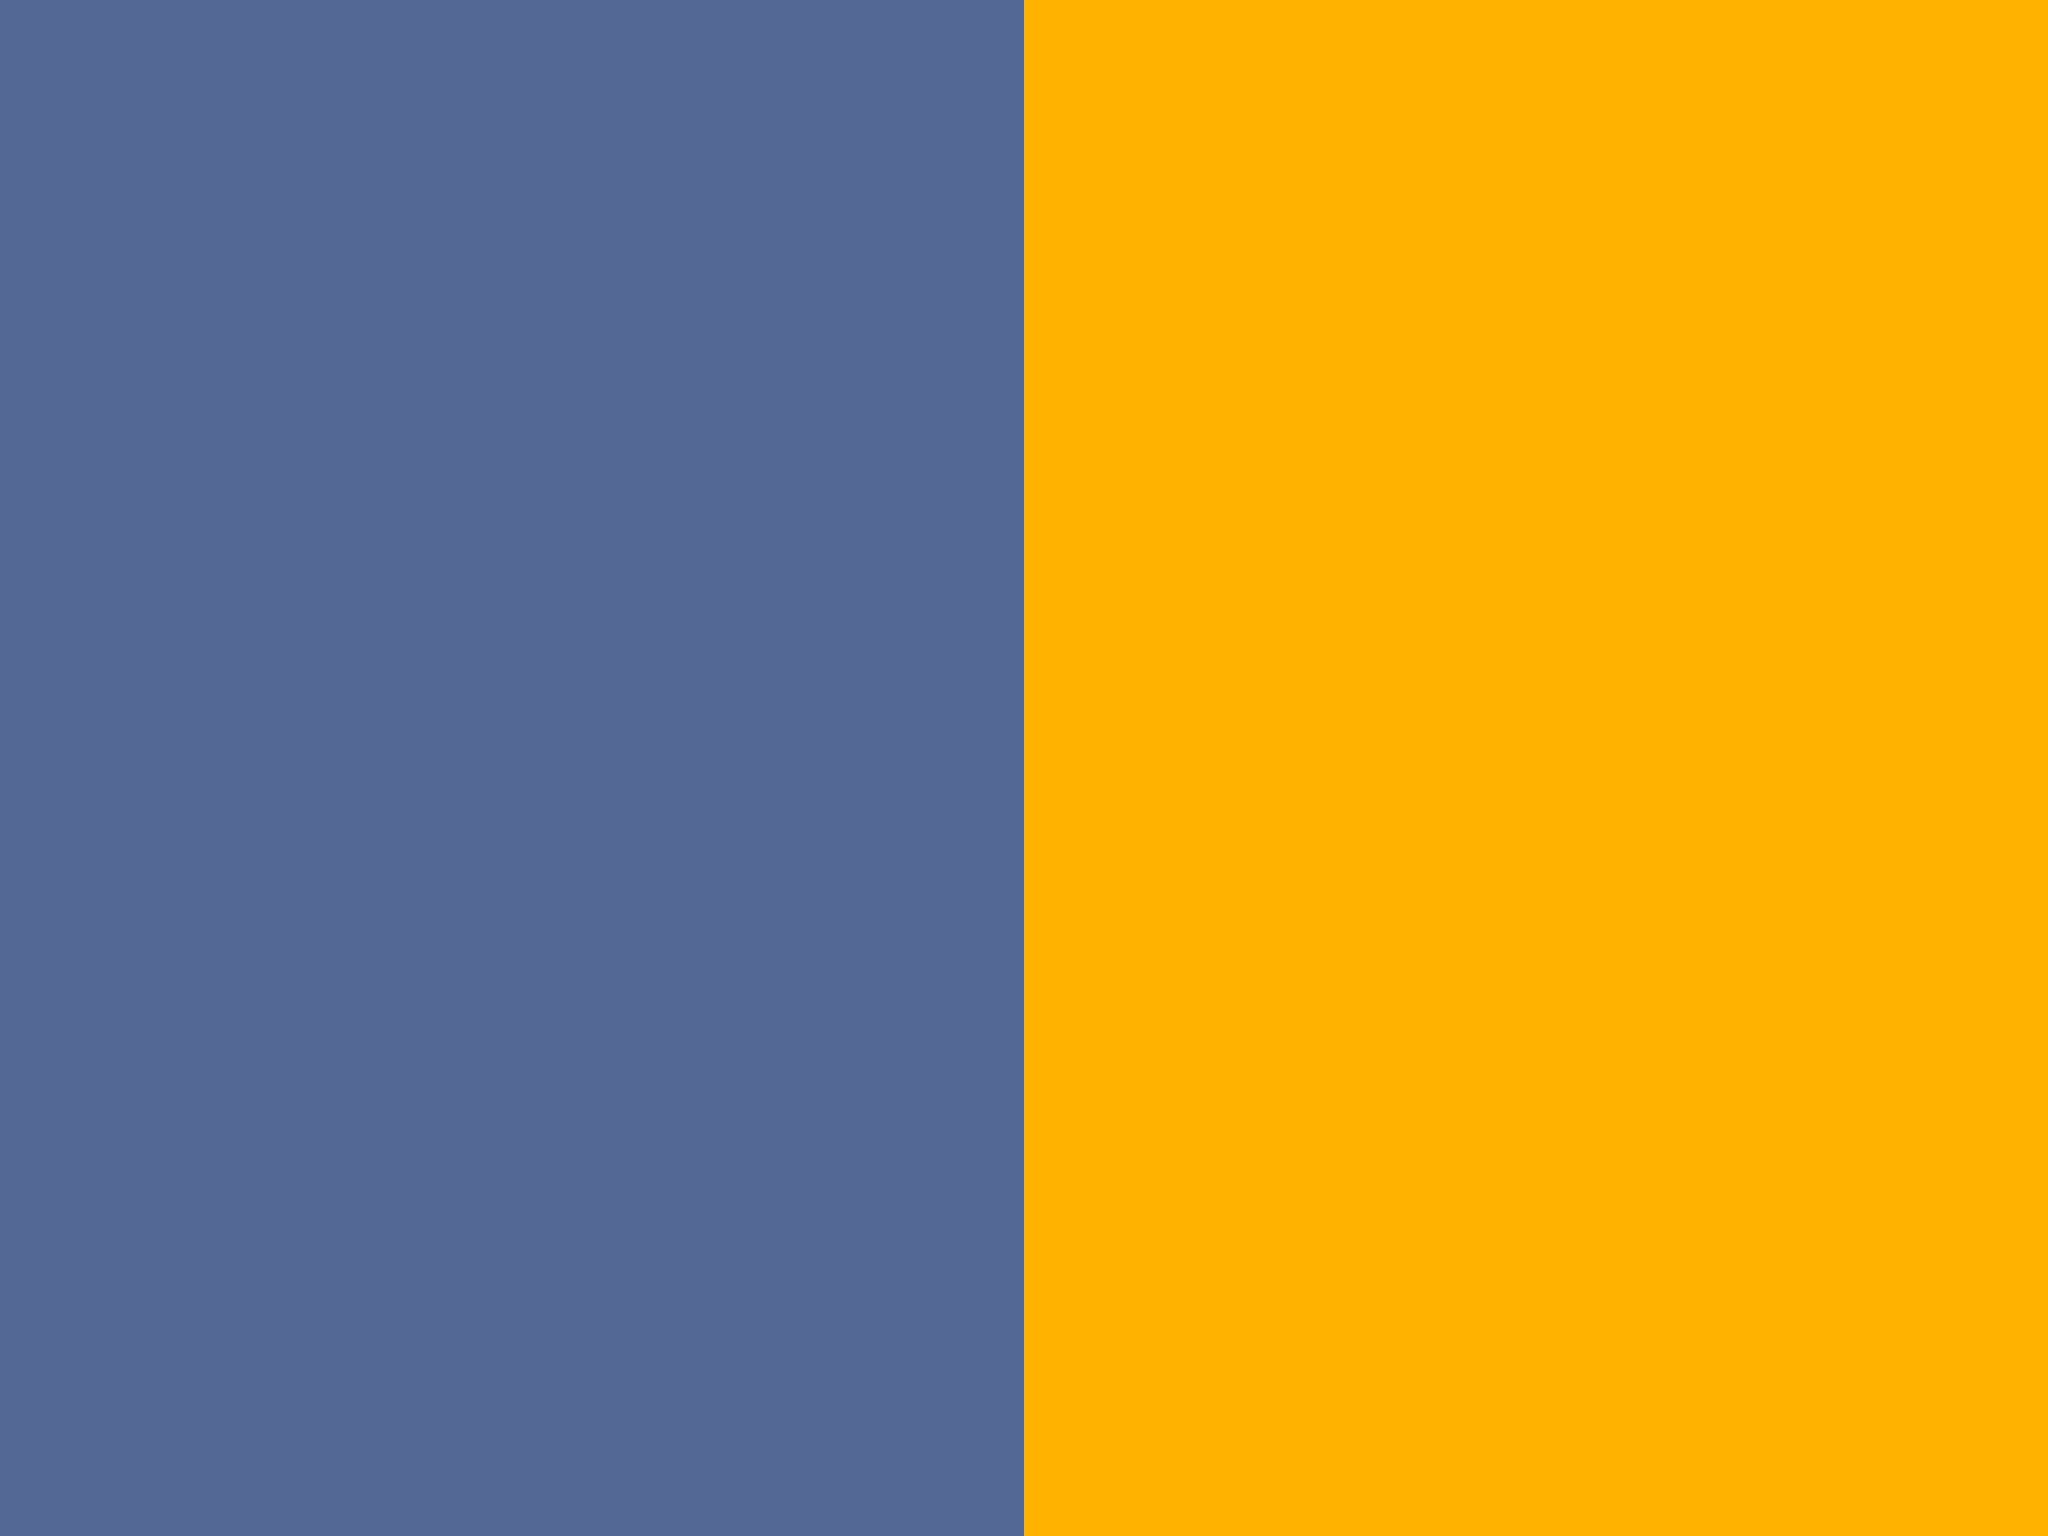 2048x1536 resolution UCLA Blue and UCLA Gold solid two color 2048x1536